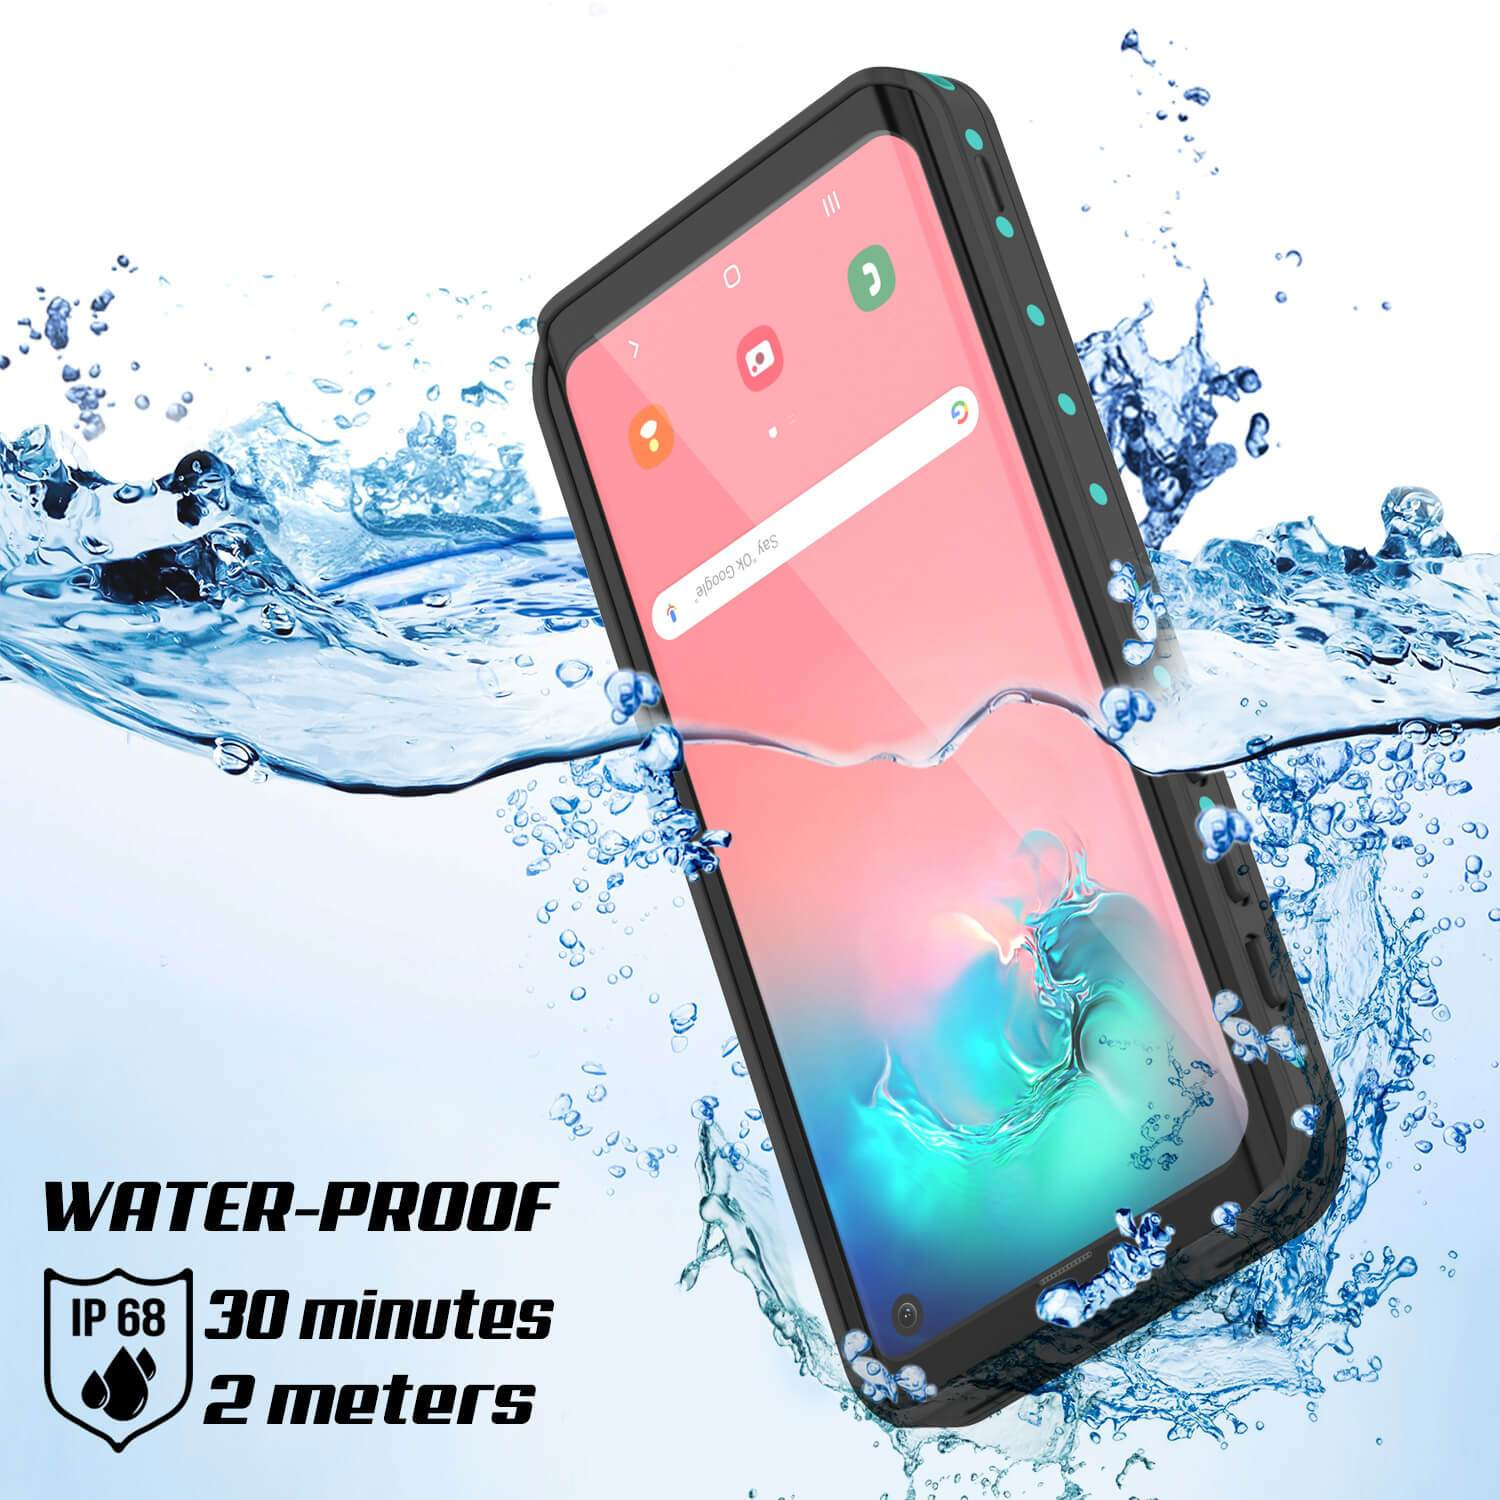 Galaxy A10e Waterproof Case PunkCase StudStar Teal Thin 6.6ft Underwater IP68 Shock/Snow Proof